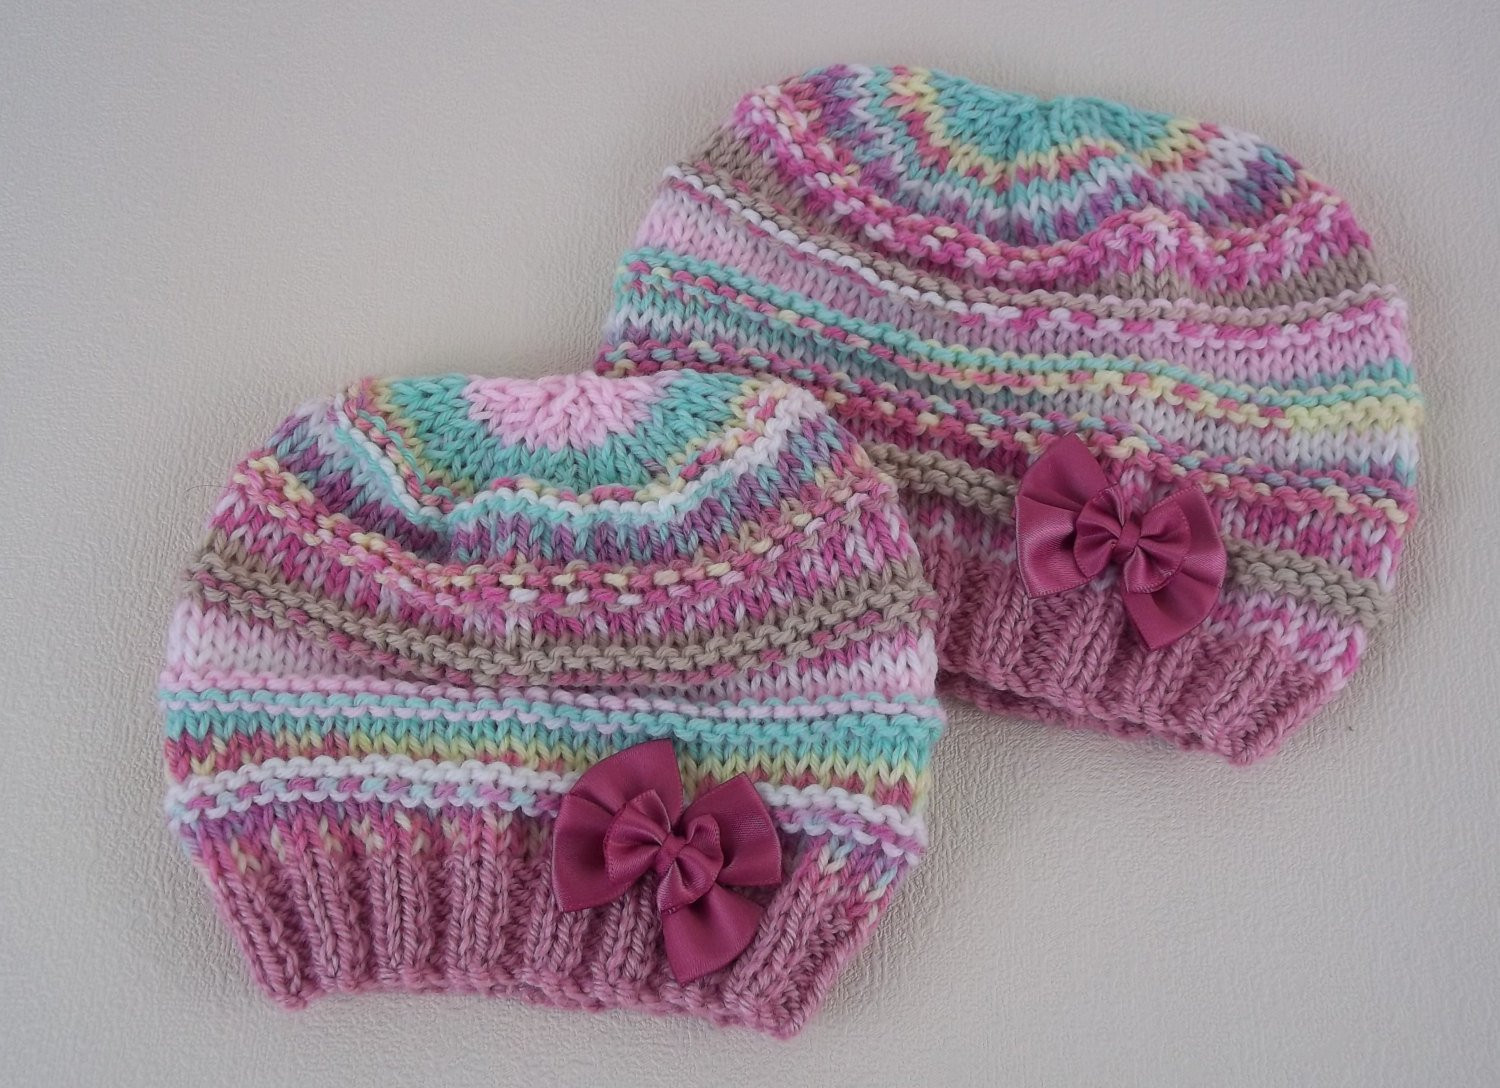 Easy Baby Knitting Patterns Beautiful Baby Knitting Pattern Easy Knit Baby Hat Download Pdf Of Innovative 50 Photos Easy Baby Knitting Patterns